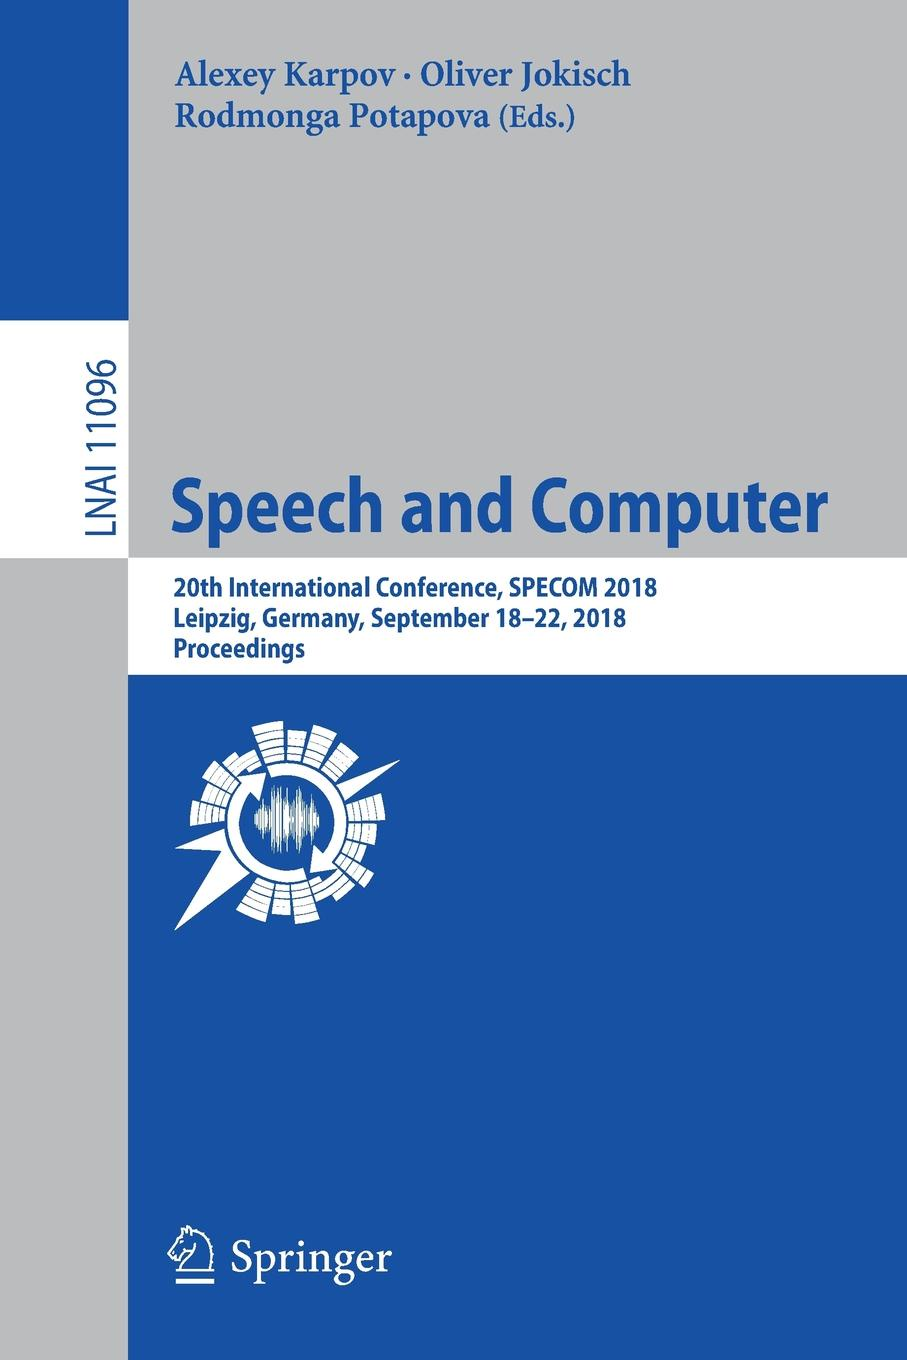 Speech and Computer. 20th International Conference, SPECOM 2018, Leipzig, Germany, September 18-22, 2018, Proceedings